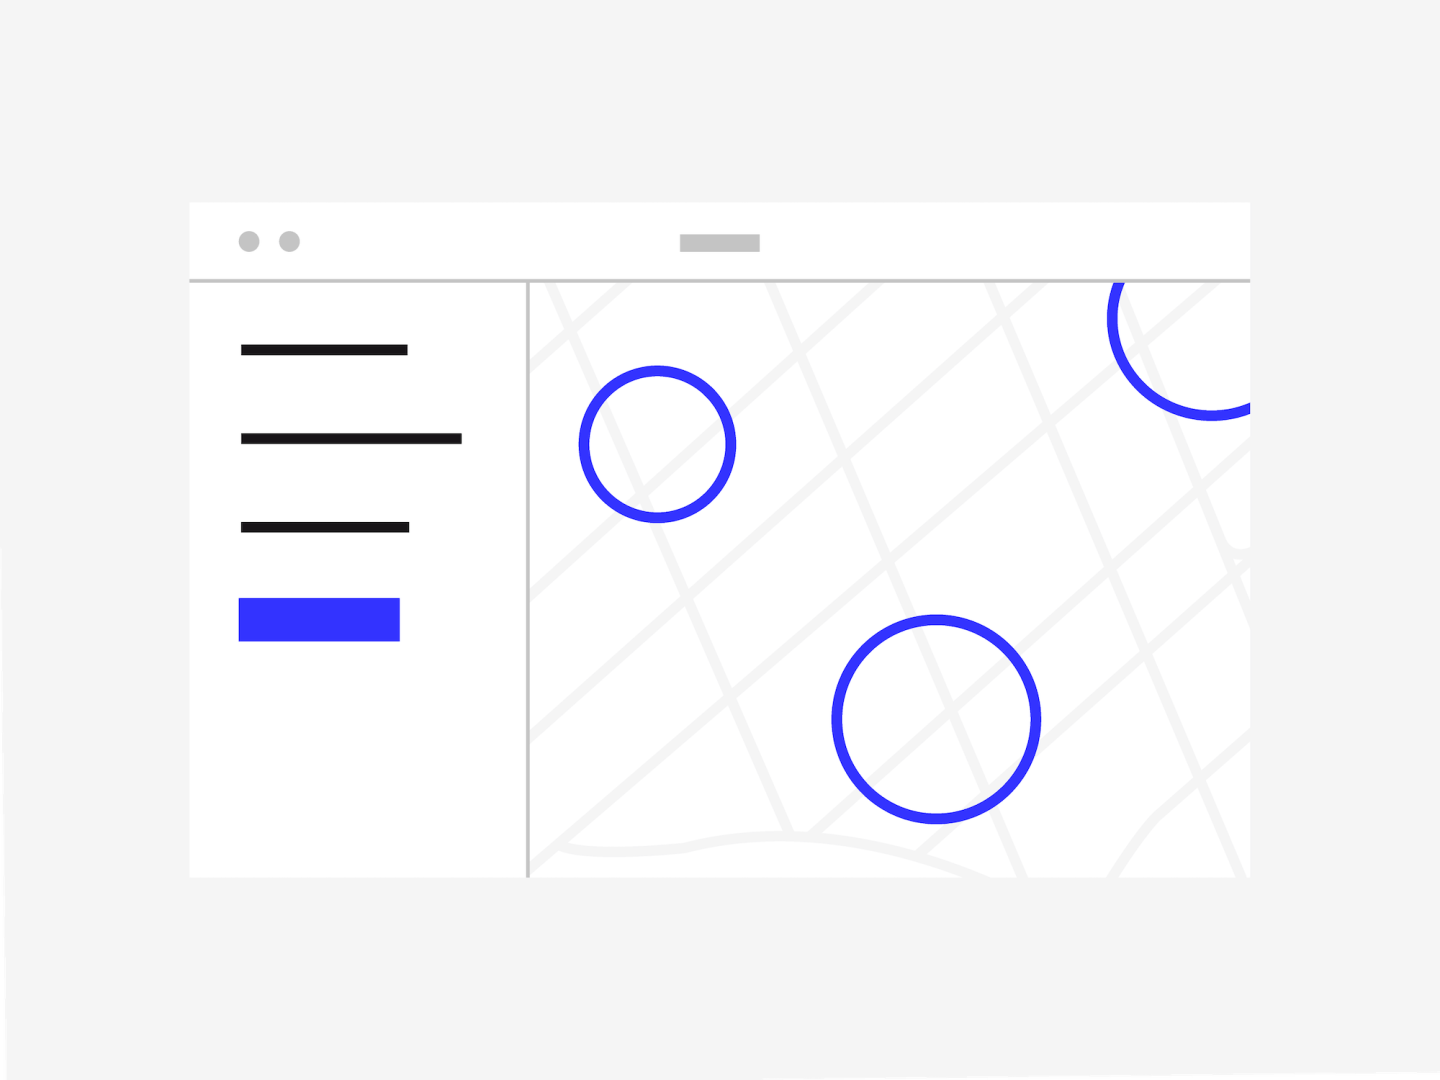 an illustration of a UI with 3 lines on the left and 3 circles on a map representing geofences.